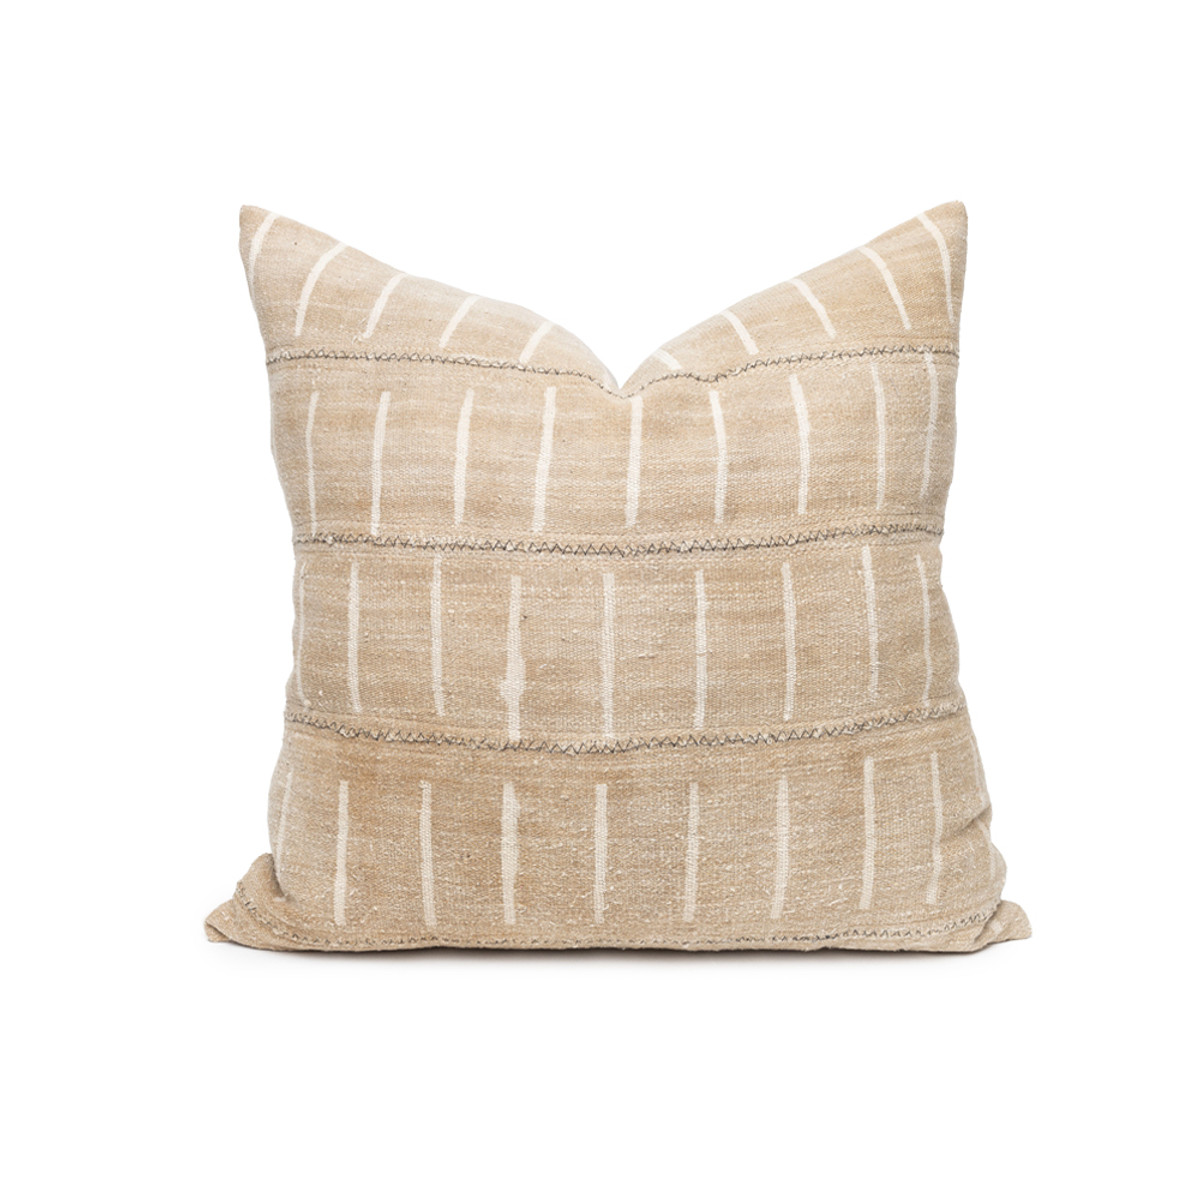 Liam Mud Cloth Pillow in Taupe - Front